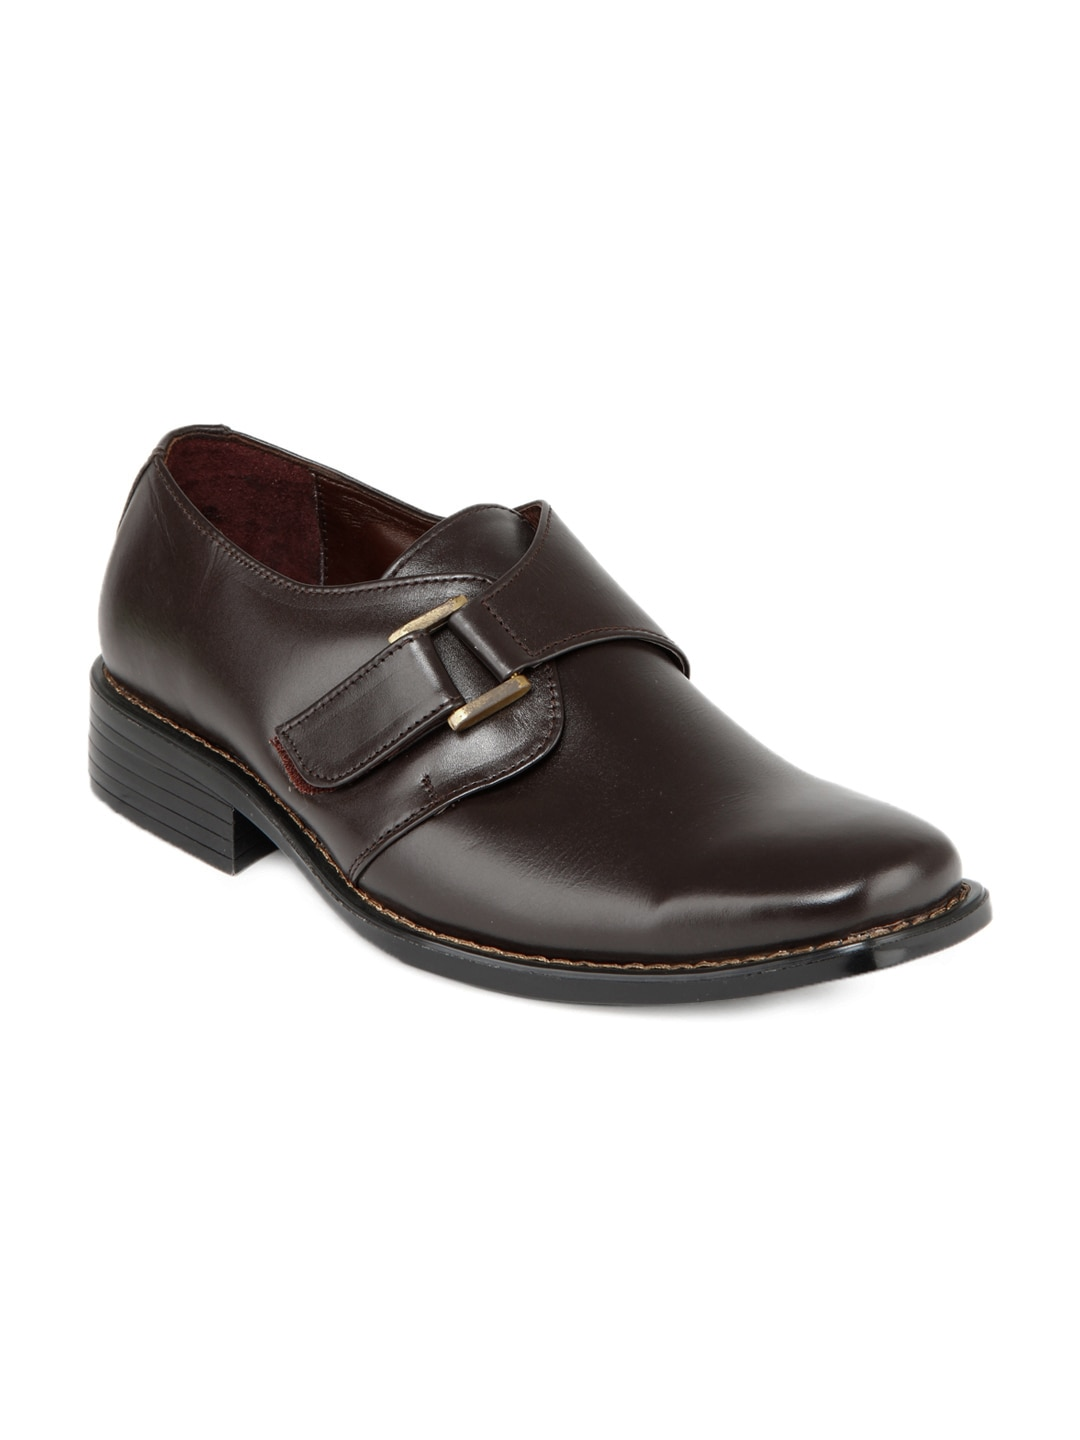 buy hm brown leather semi formal shoes 288